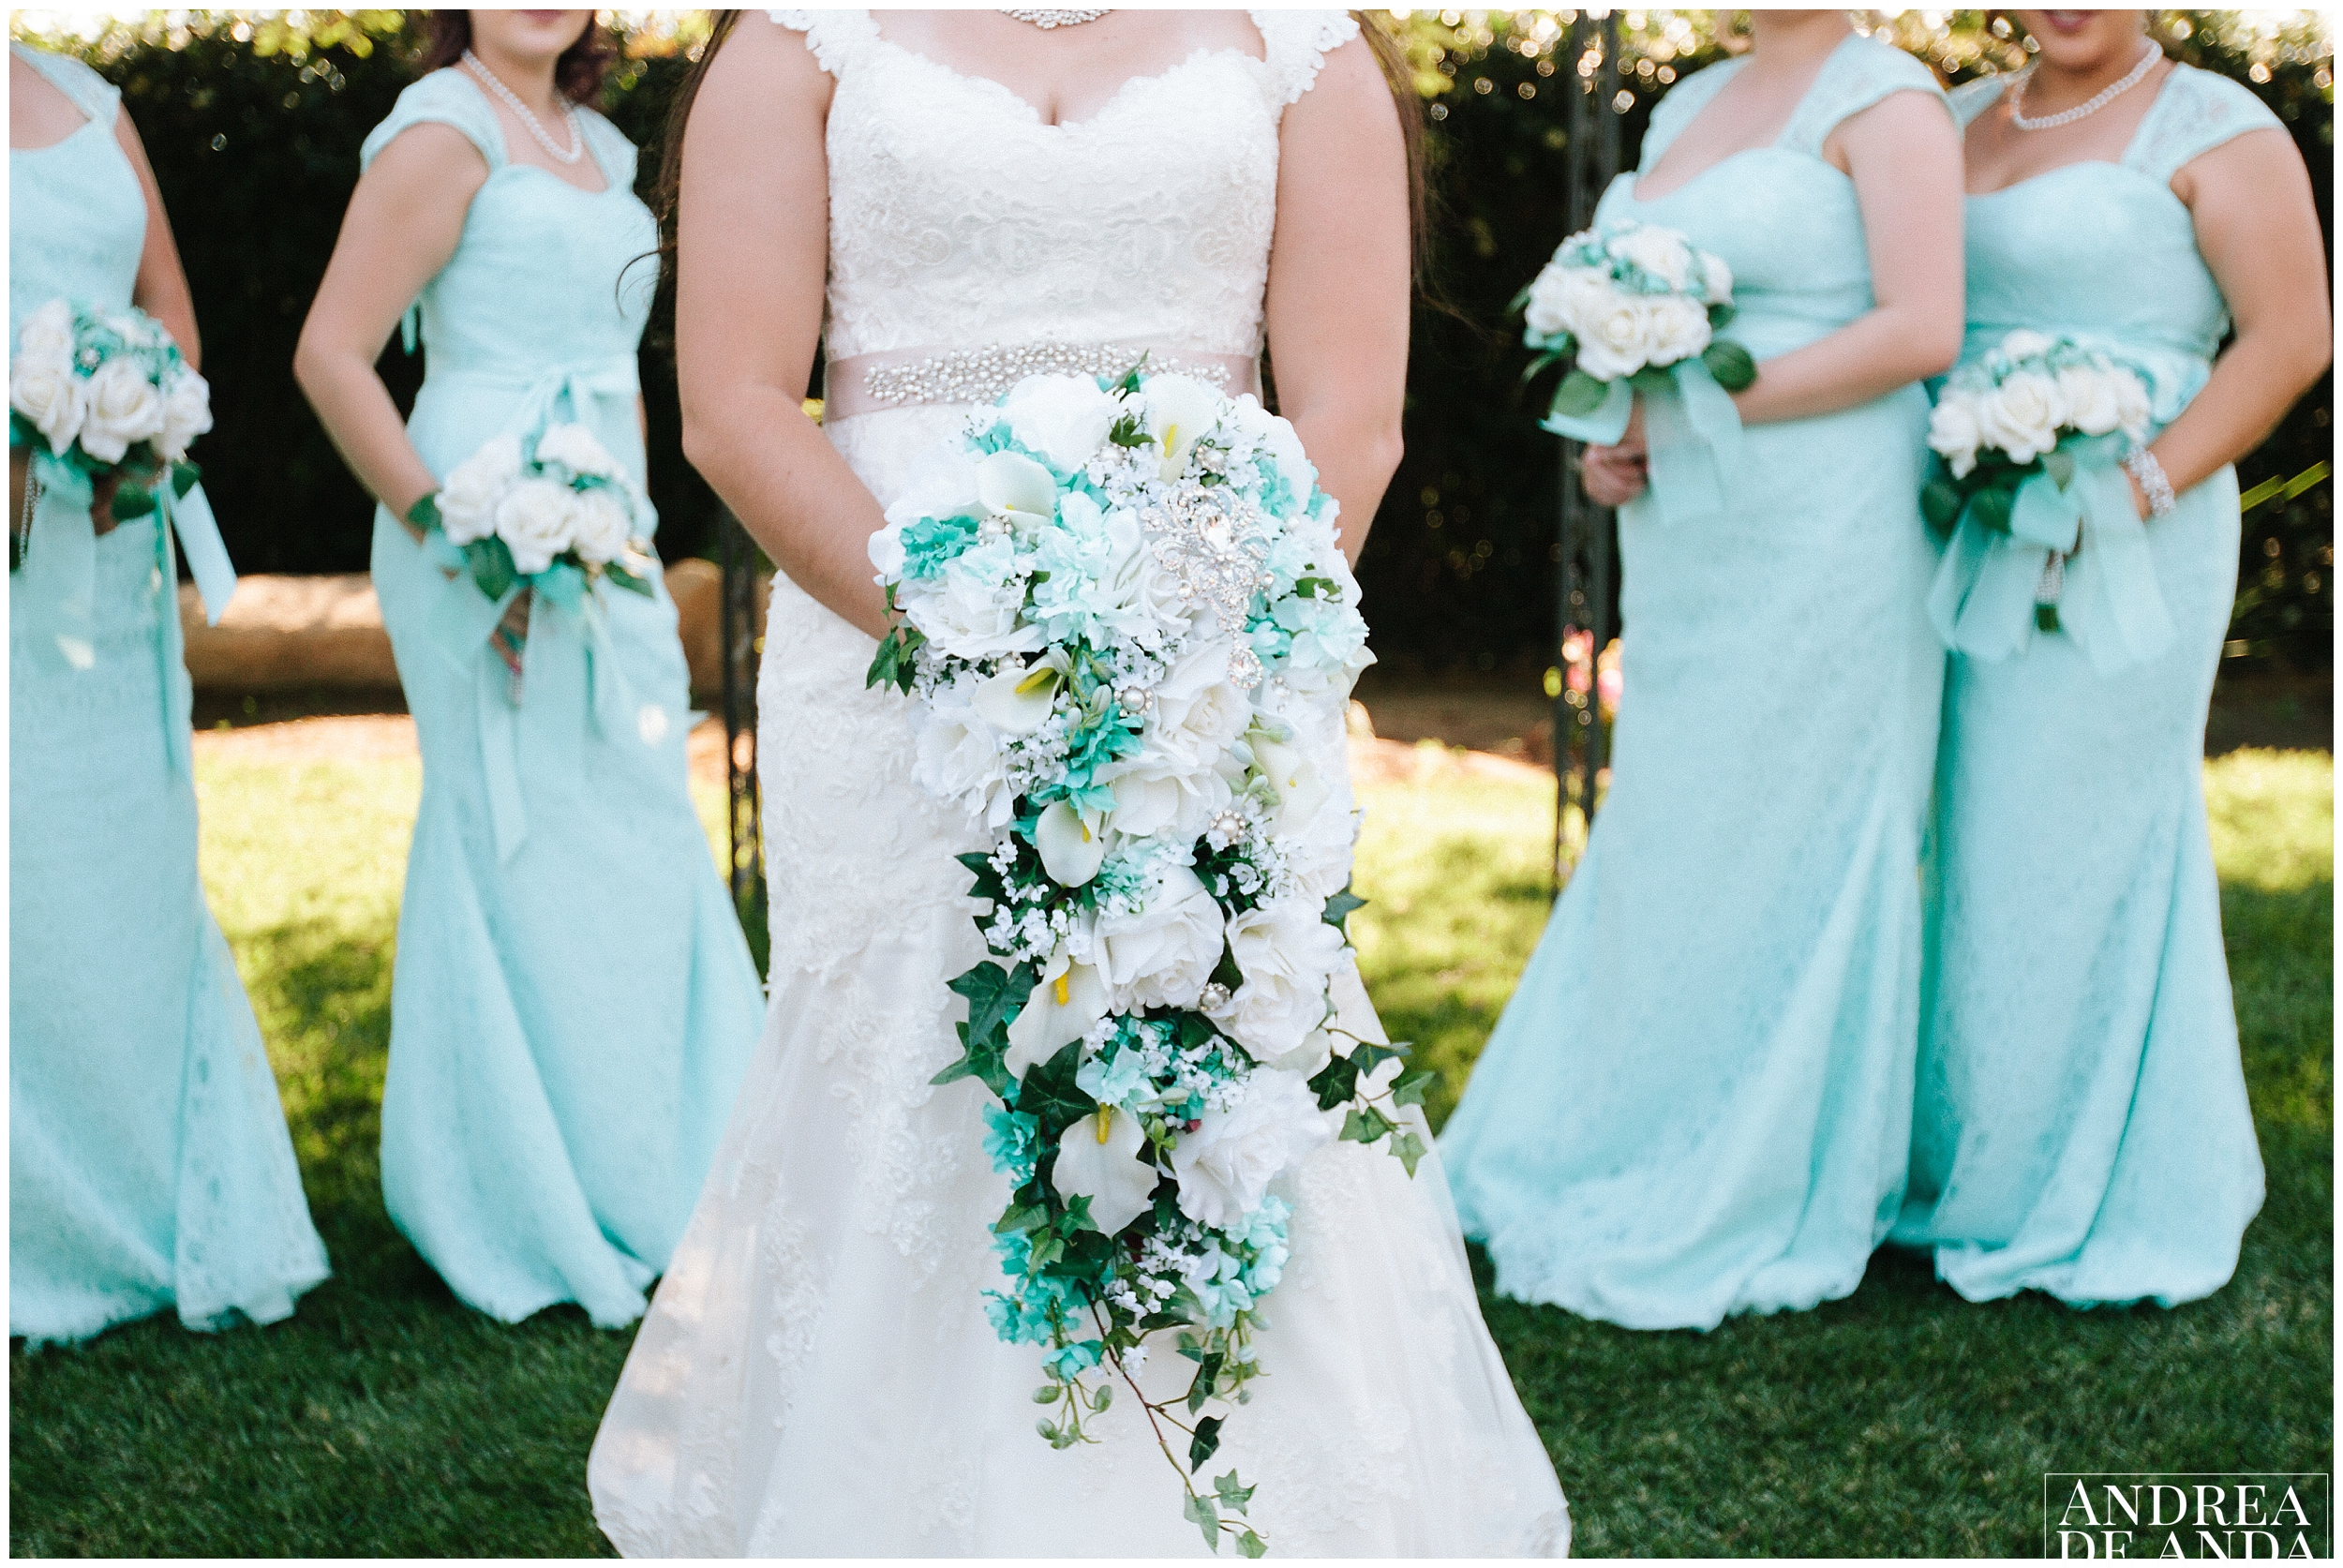 Bride and bridesmaids photosession with bouquets